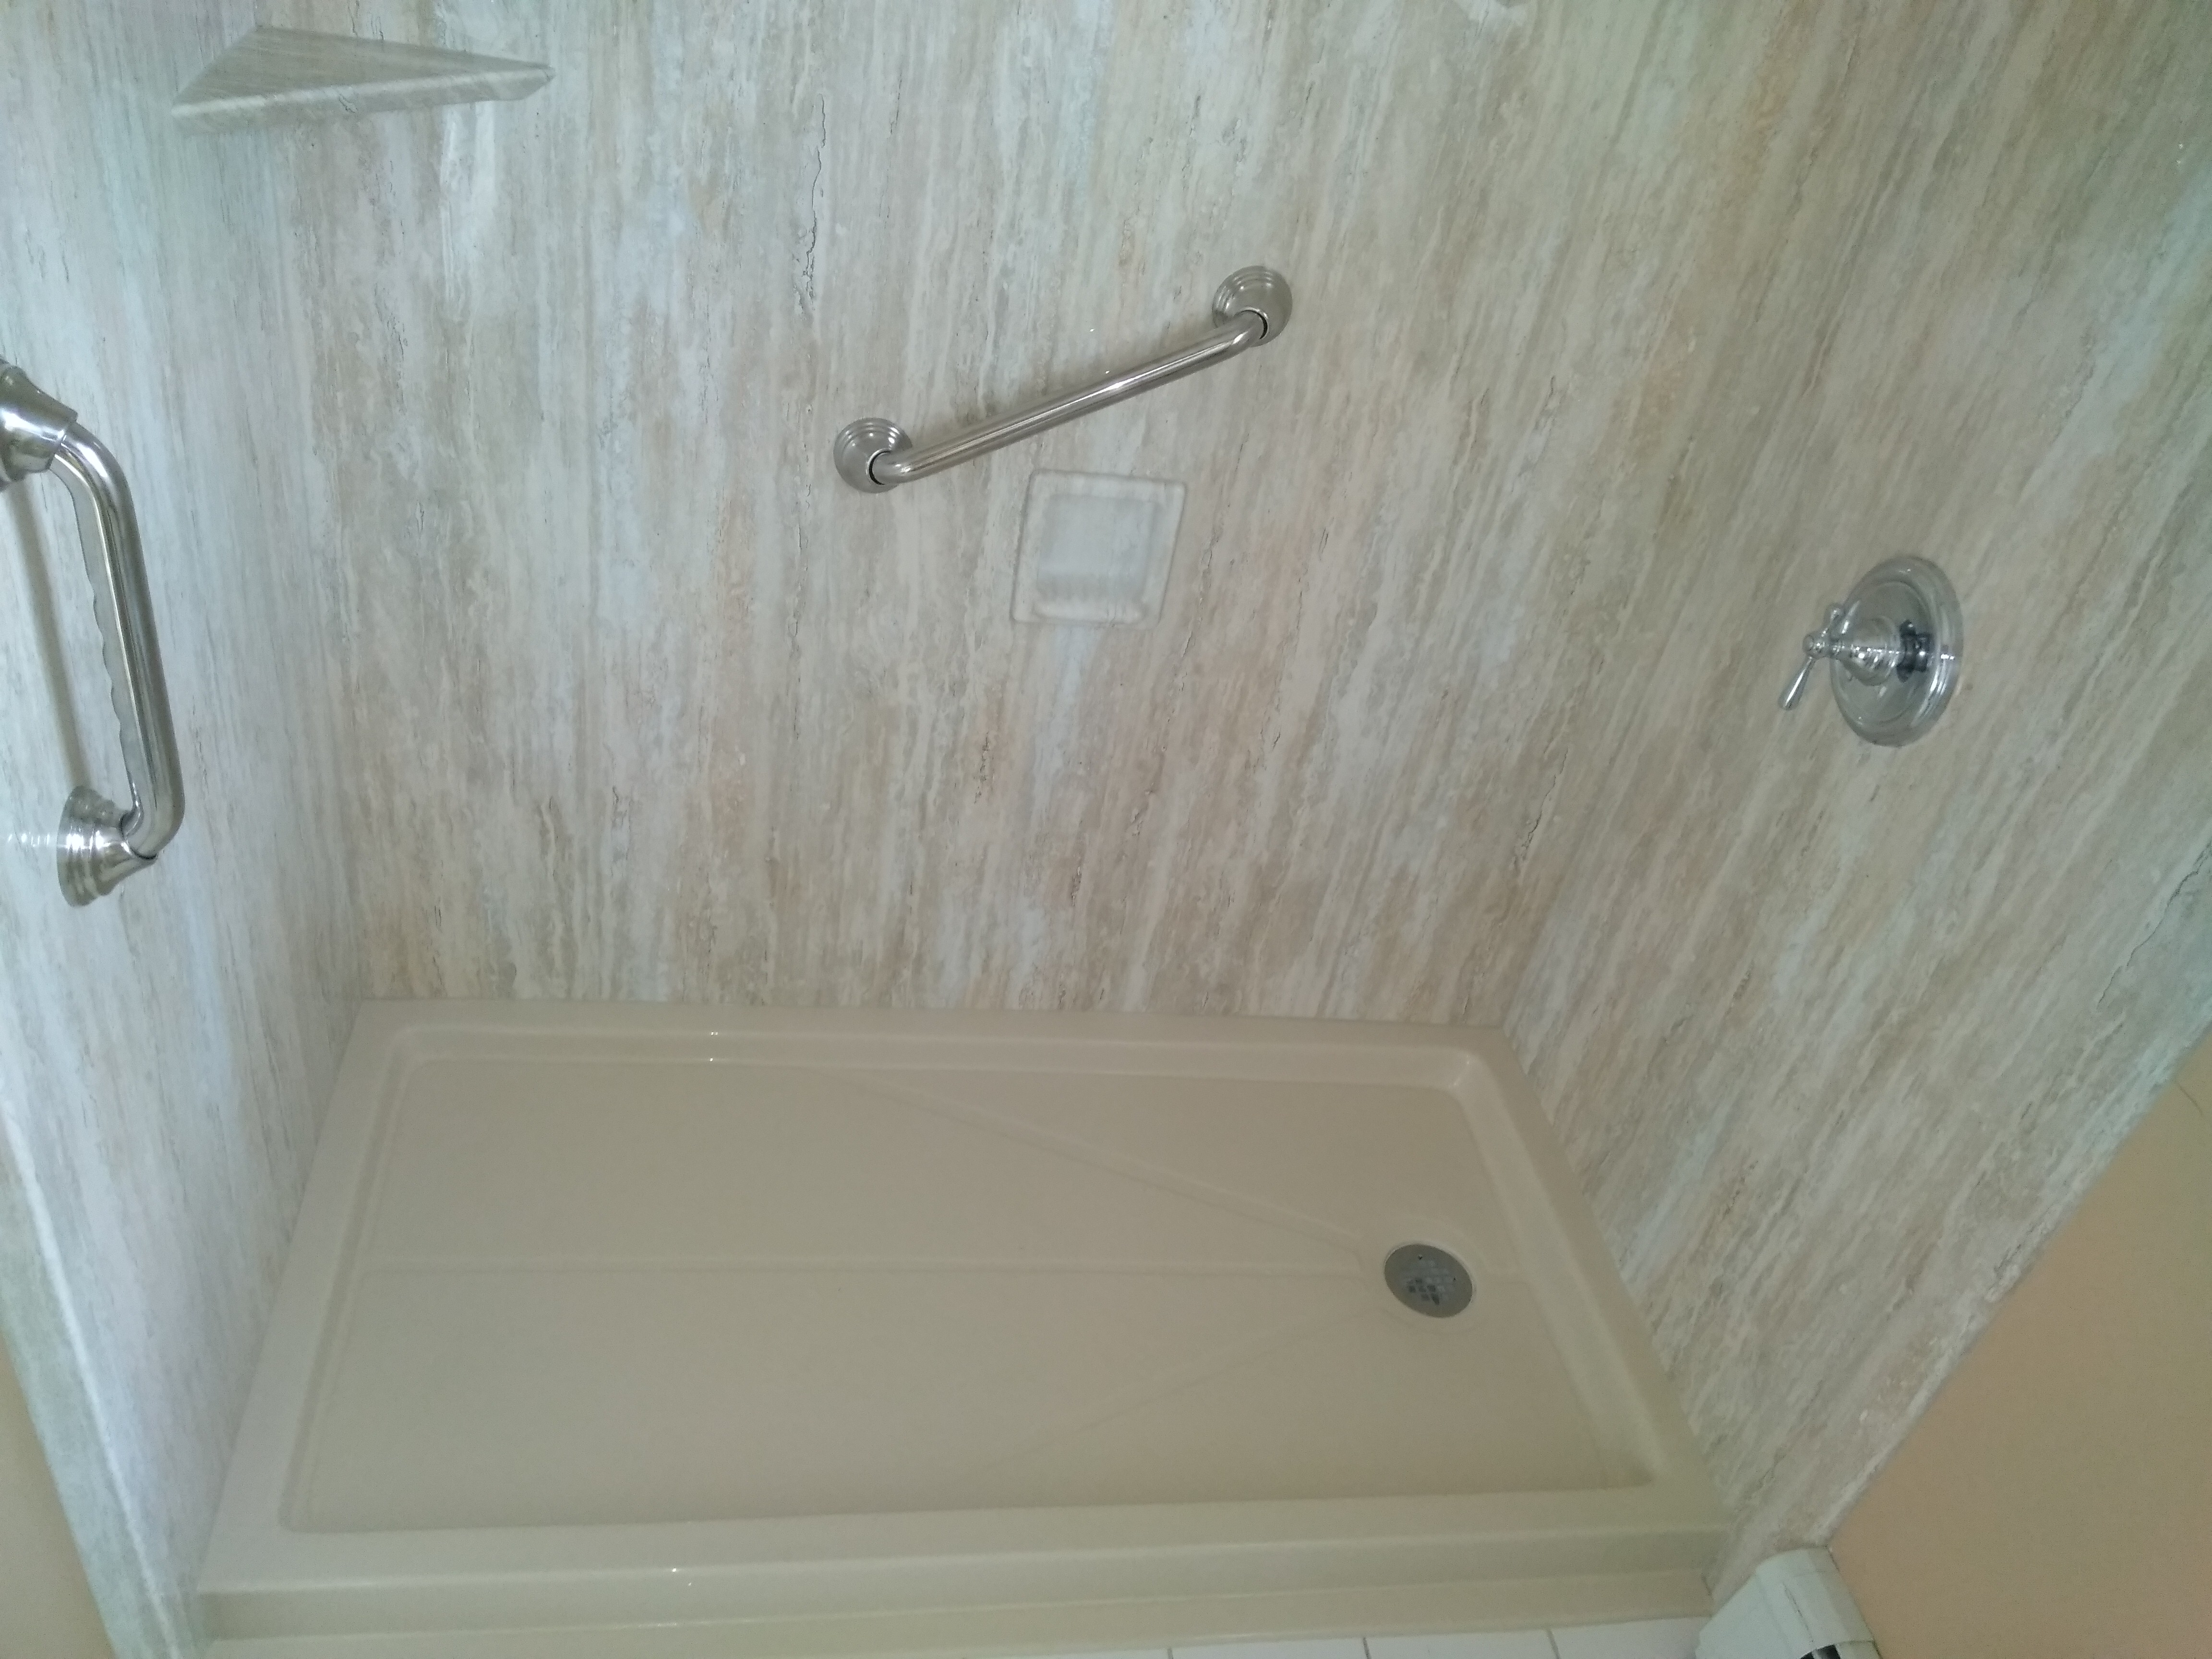 Bathroom Remodeling Projects New Jersey Remodeling Contractor - Bathroom remodeling toms river nj